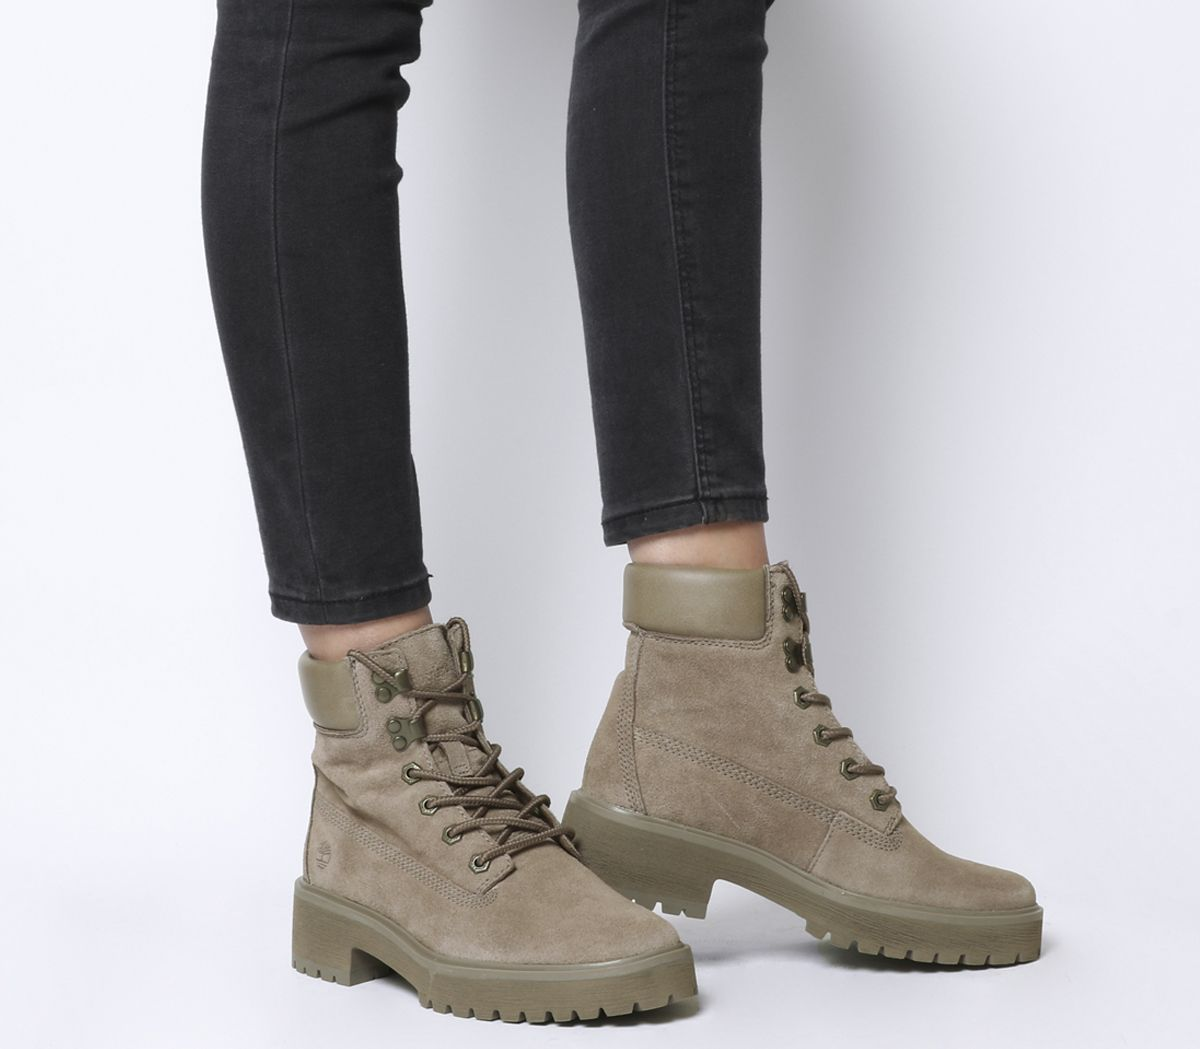 5bd15b0e842 Timberland Carnaby Cool Boots Taupe Grey - Ankle Boots